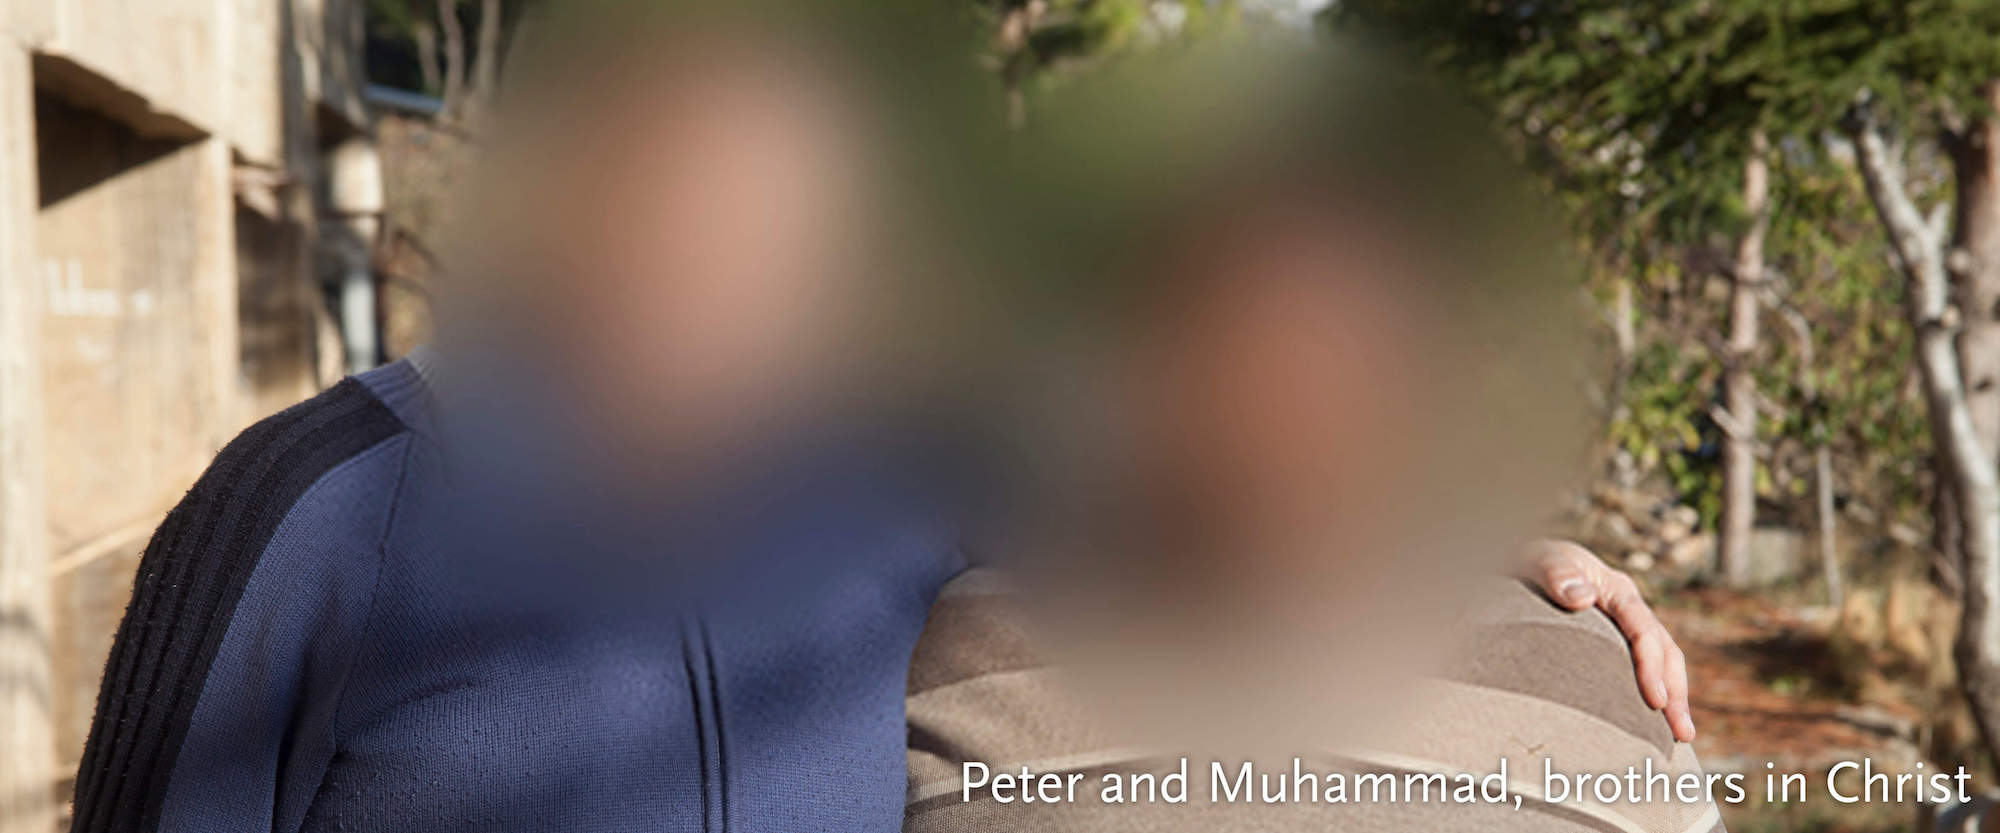 Two Arab men - faces blurred